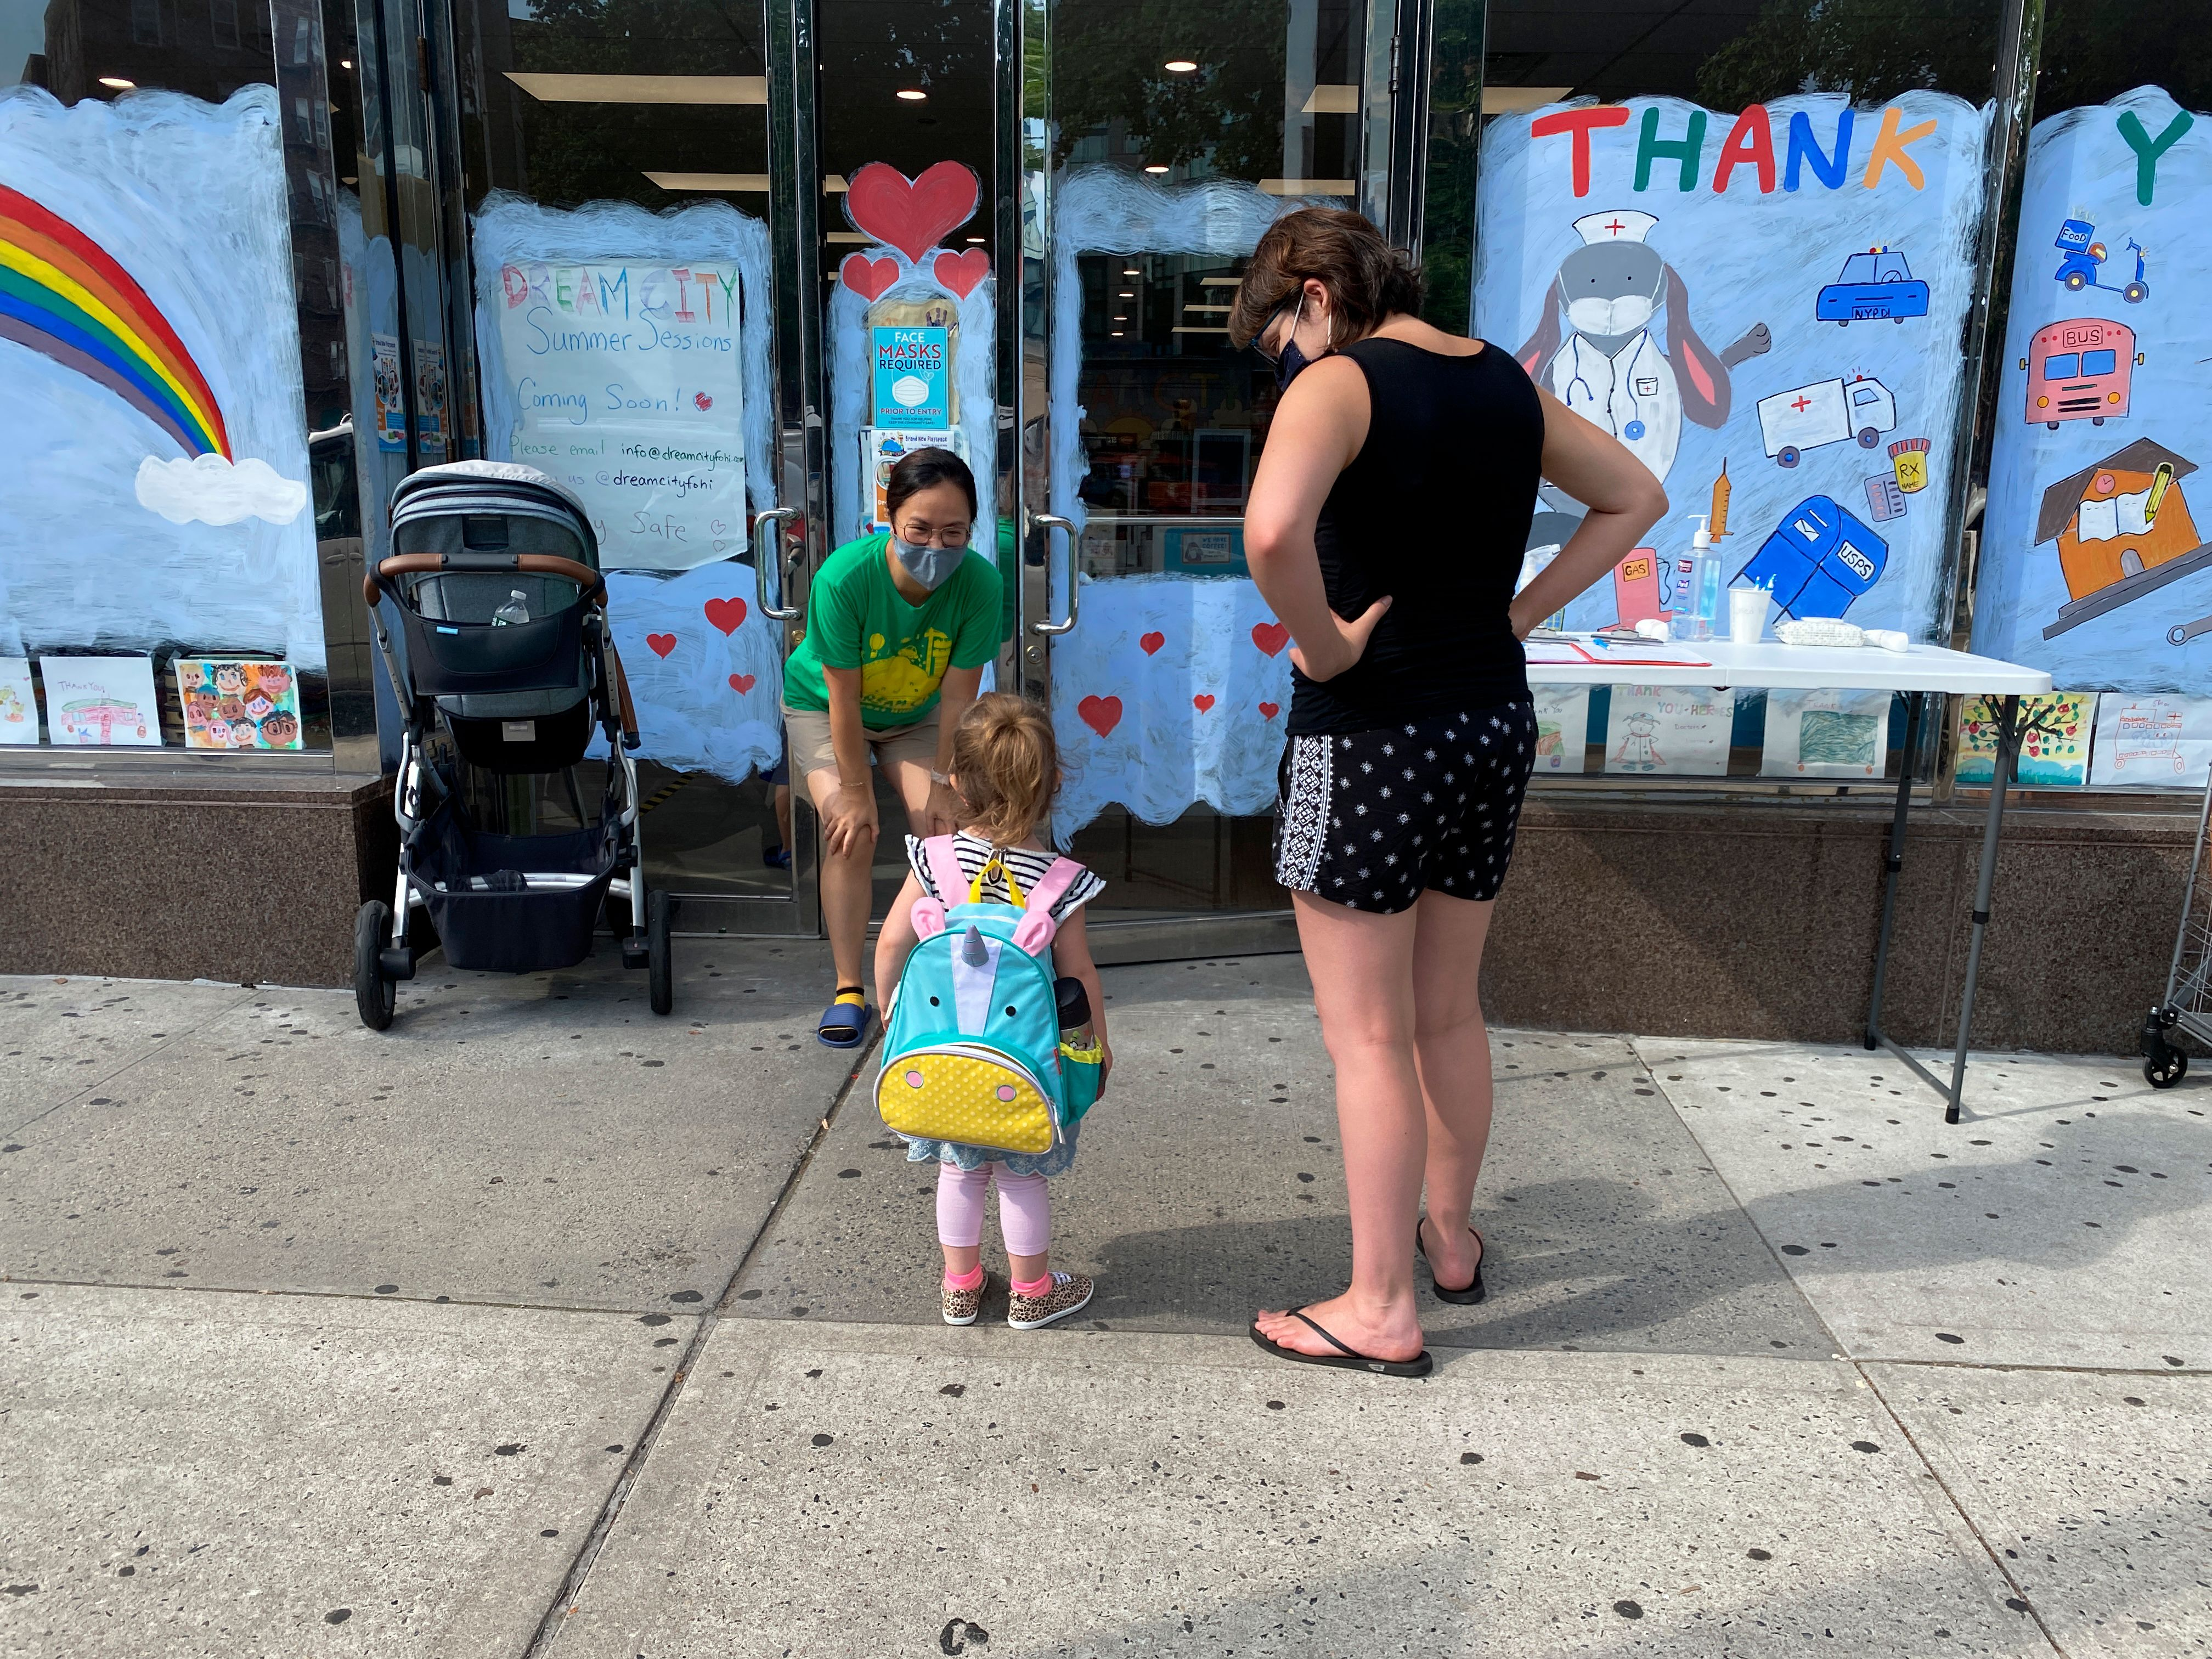 Day care drop-off in the Queens borough of New York City after phase 4 reopening during the coronavirus pandemic.